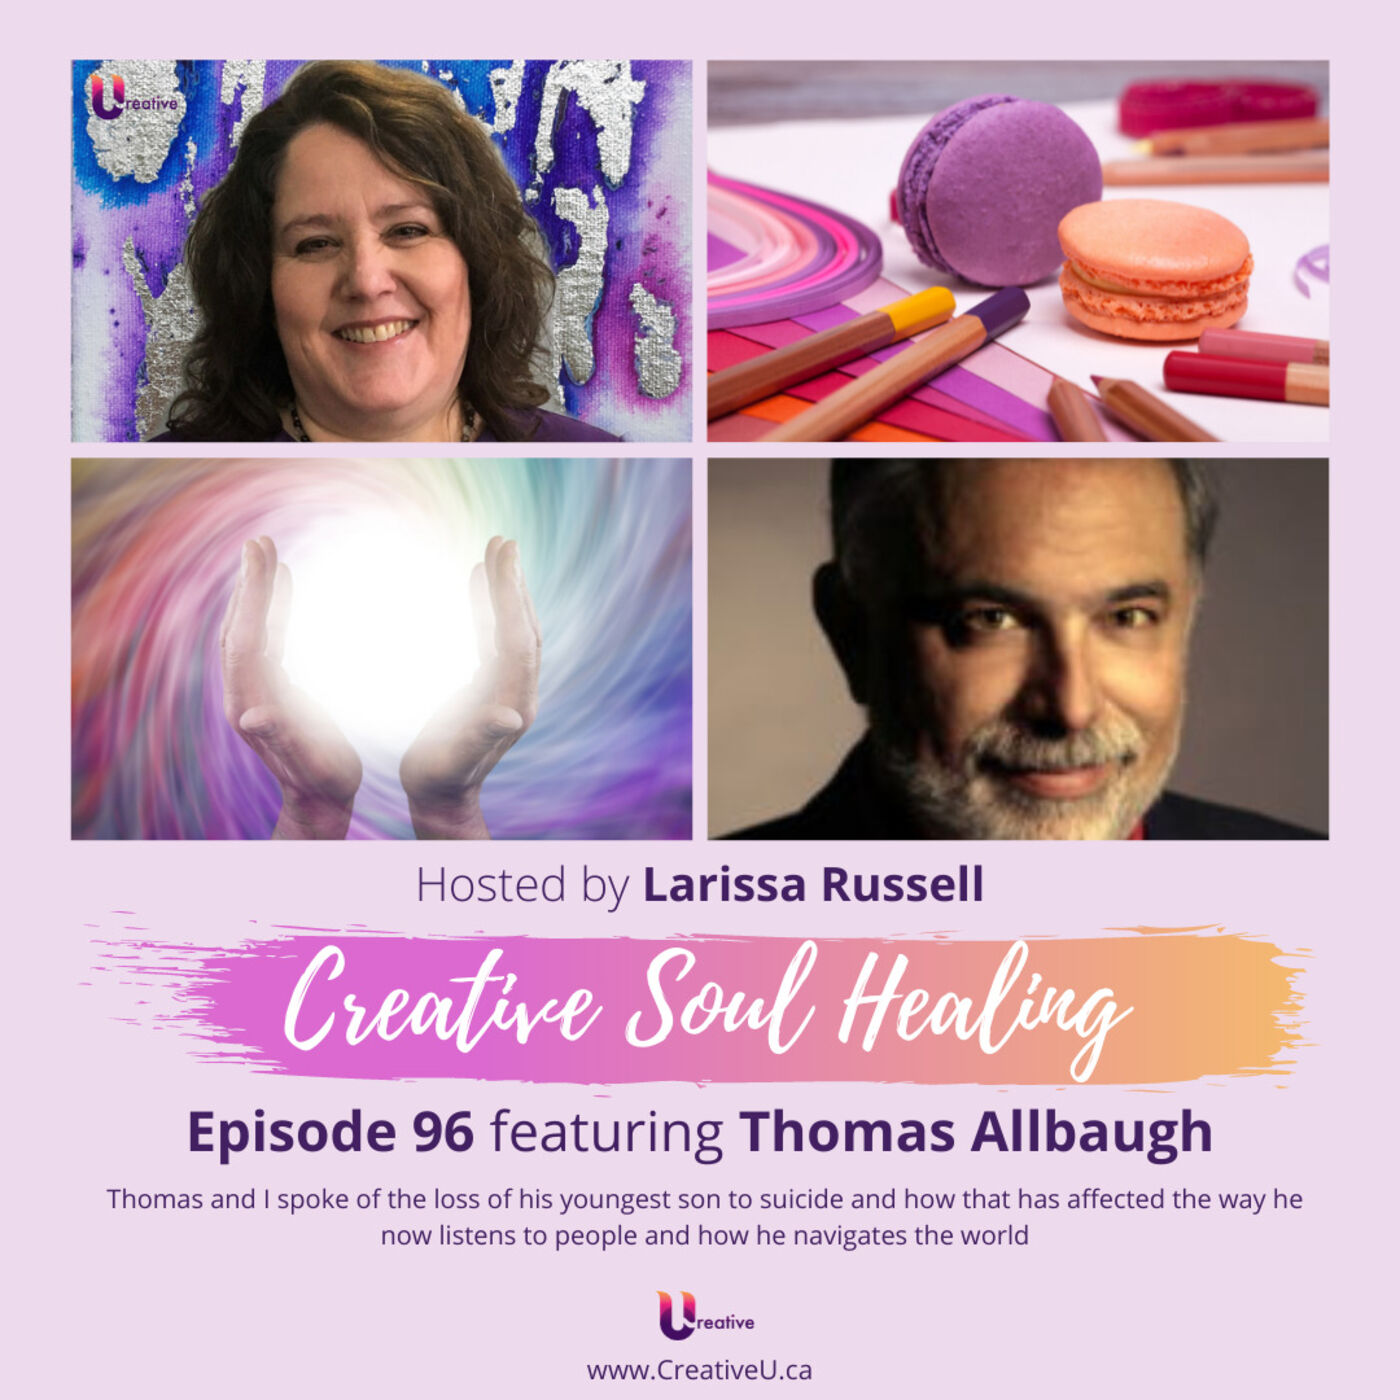 Episode 96 featuring Thomas Allbaugh: Suicide and Grief